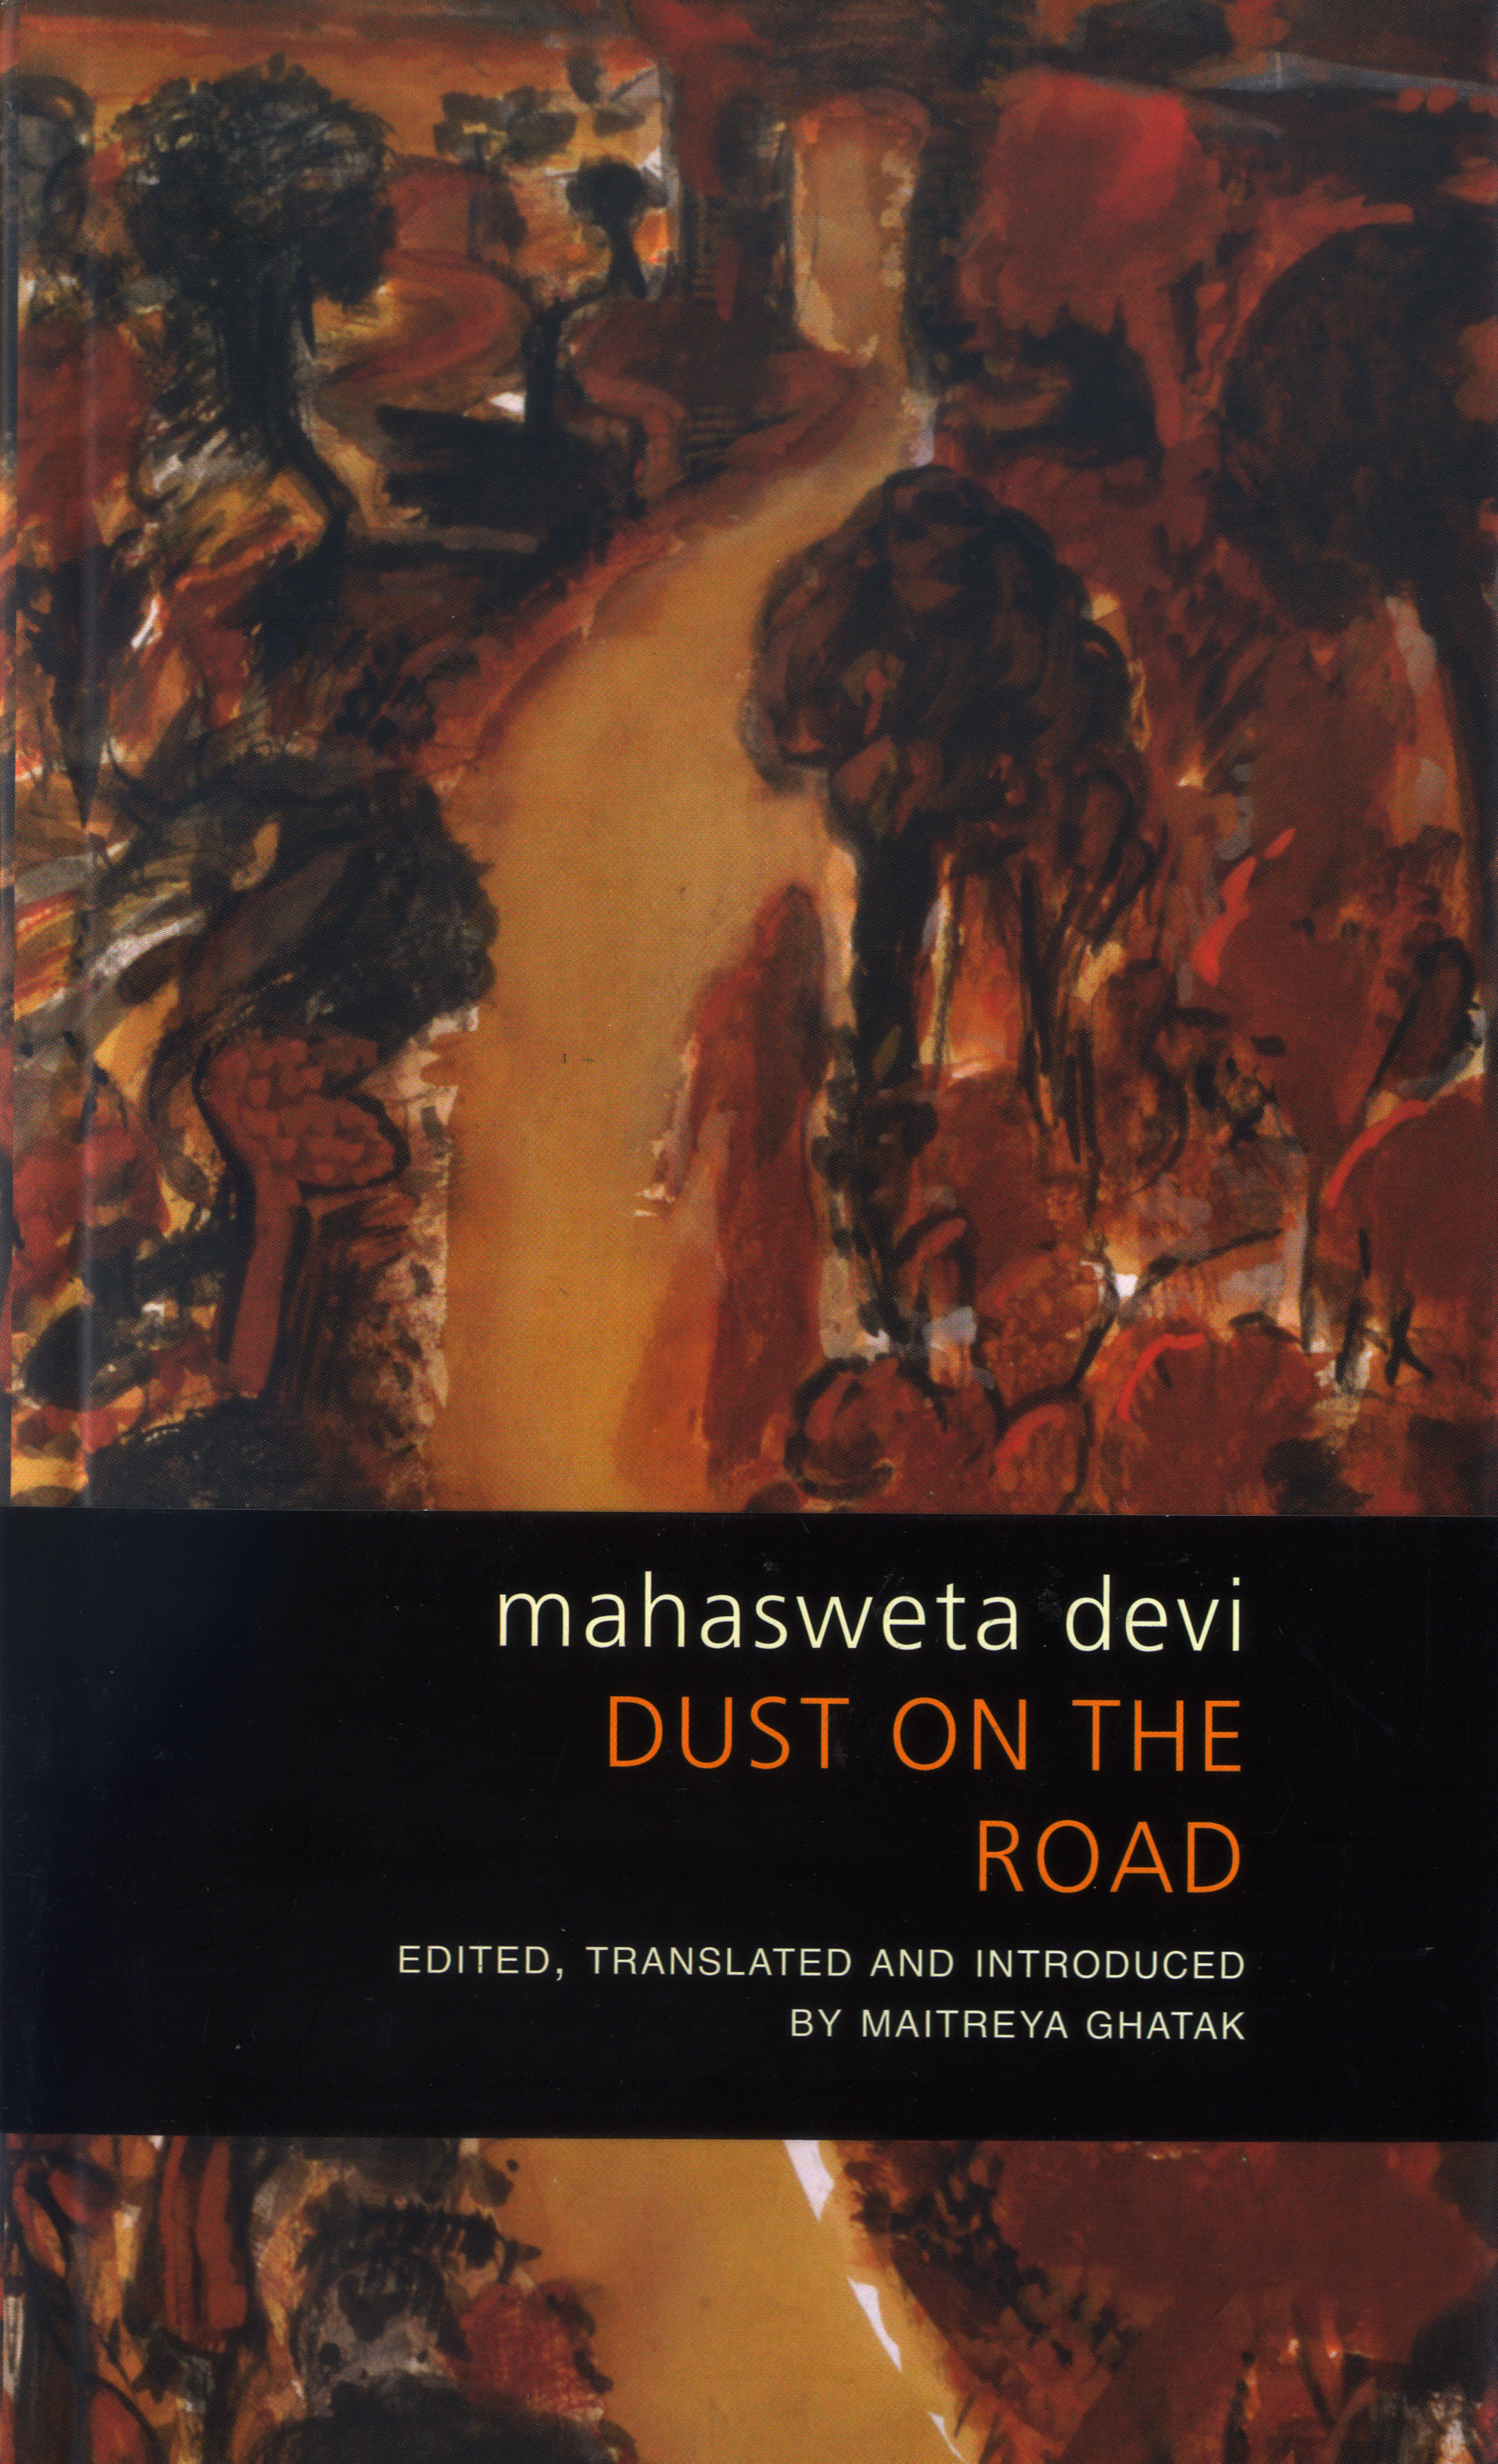 Dust on the Road by Mahasweta Devi | Seagull Books